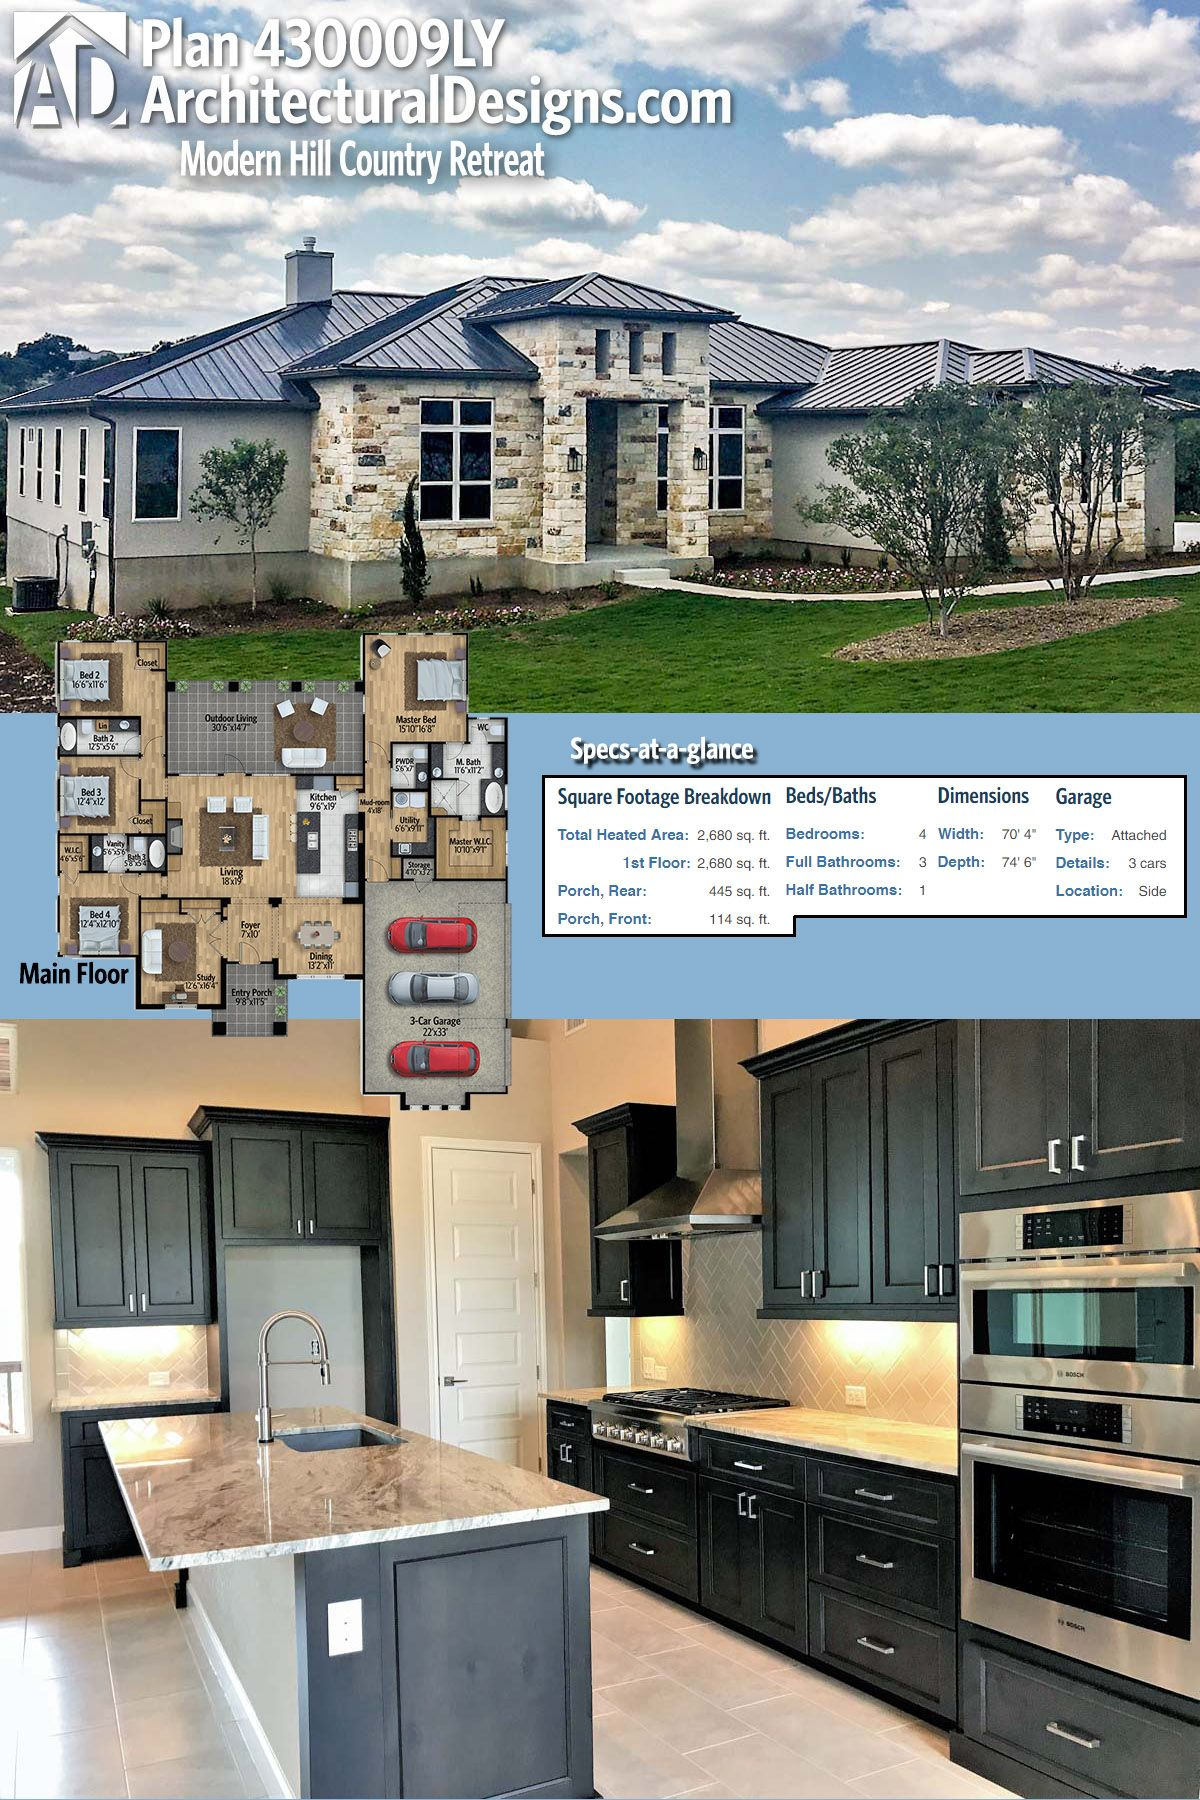 Plan 430009ly Modern Hill Country Retreat Country House Plans Modern House Plans House Plans